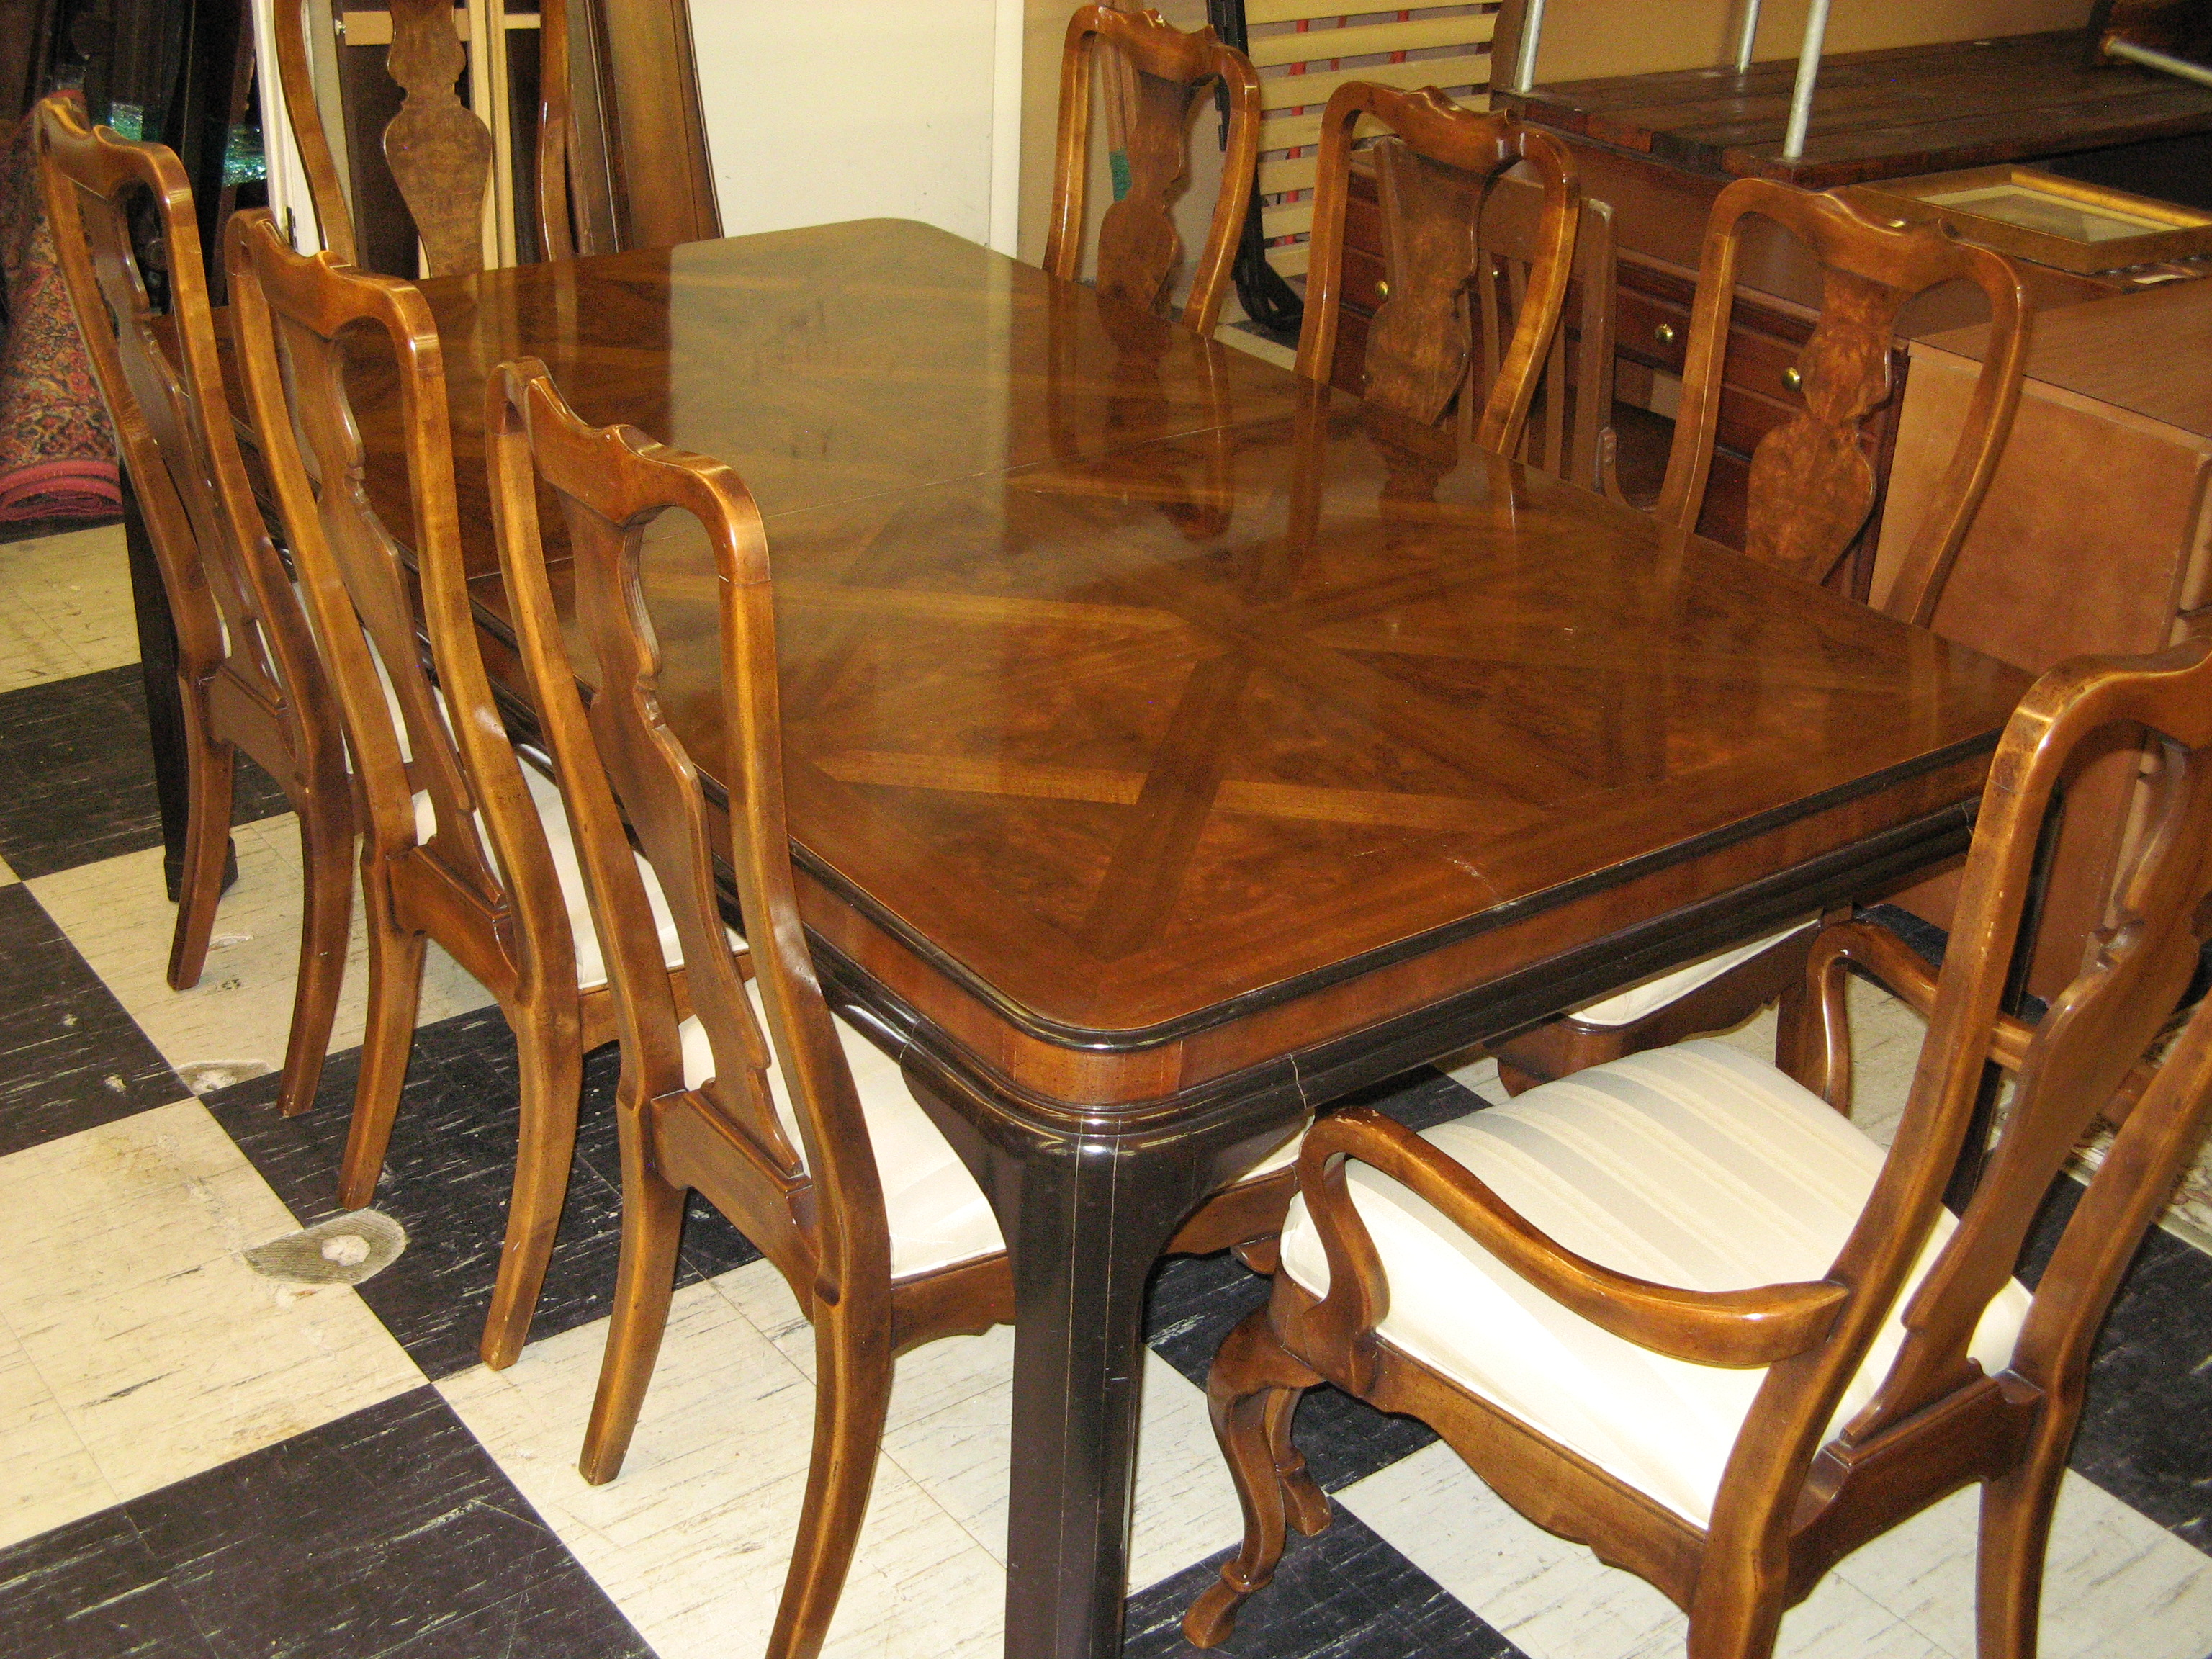 Vintage Drexel Heritage Cherry Dining Table with 8 Matching Chairs & 3 Inserts